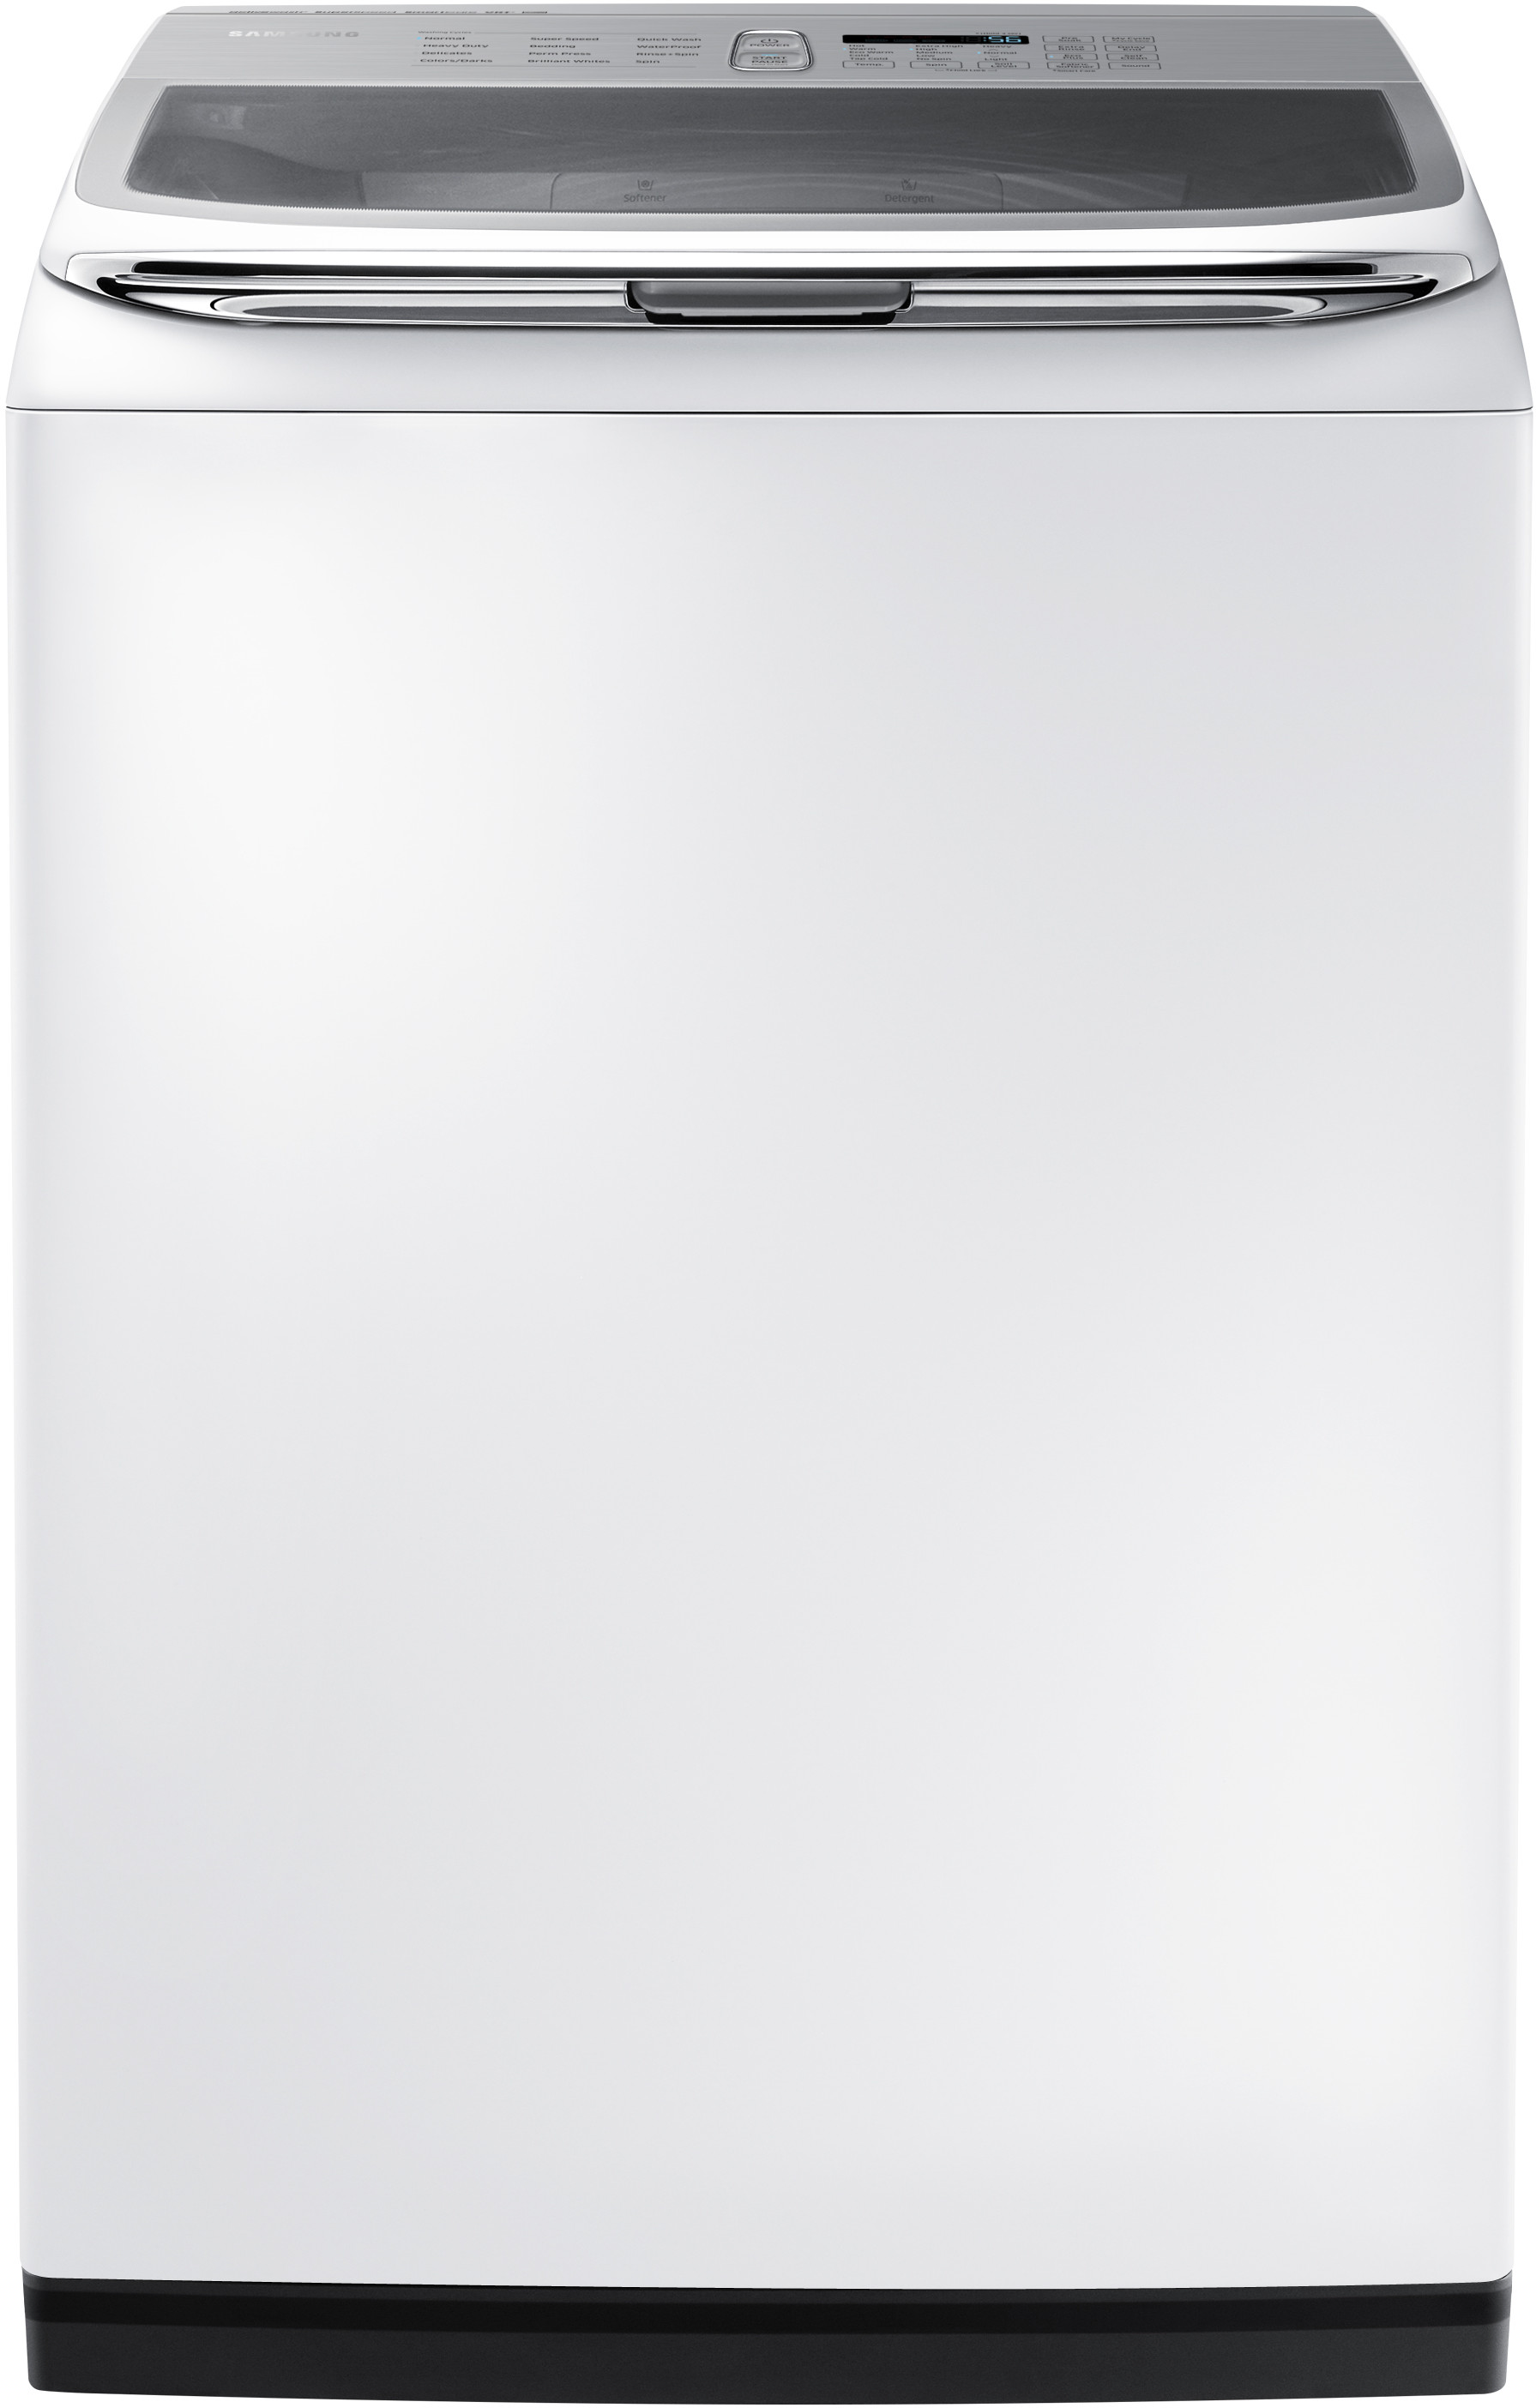 Samsung Wa50k8600aw 27 Inch Top Load Washer With